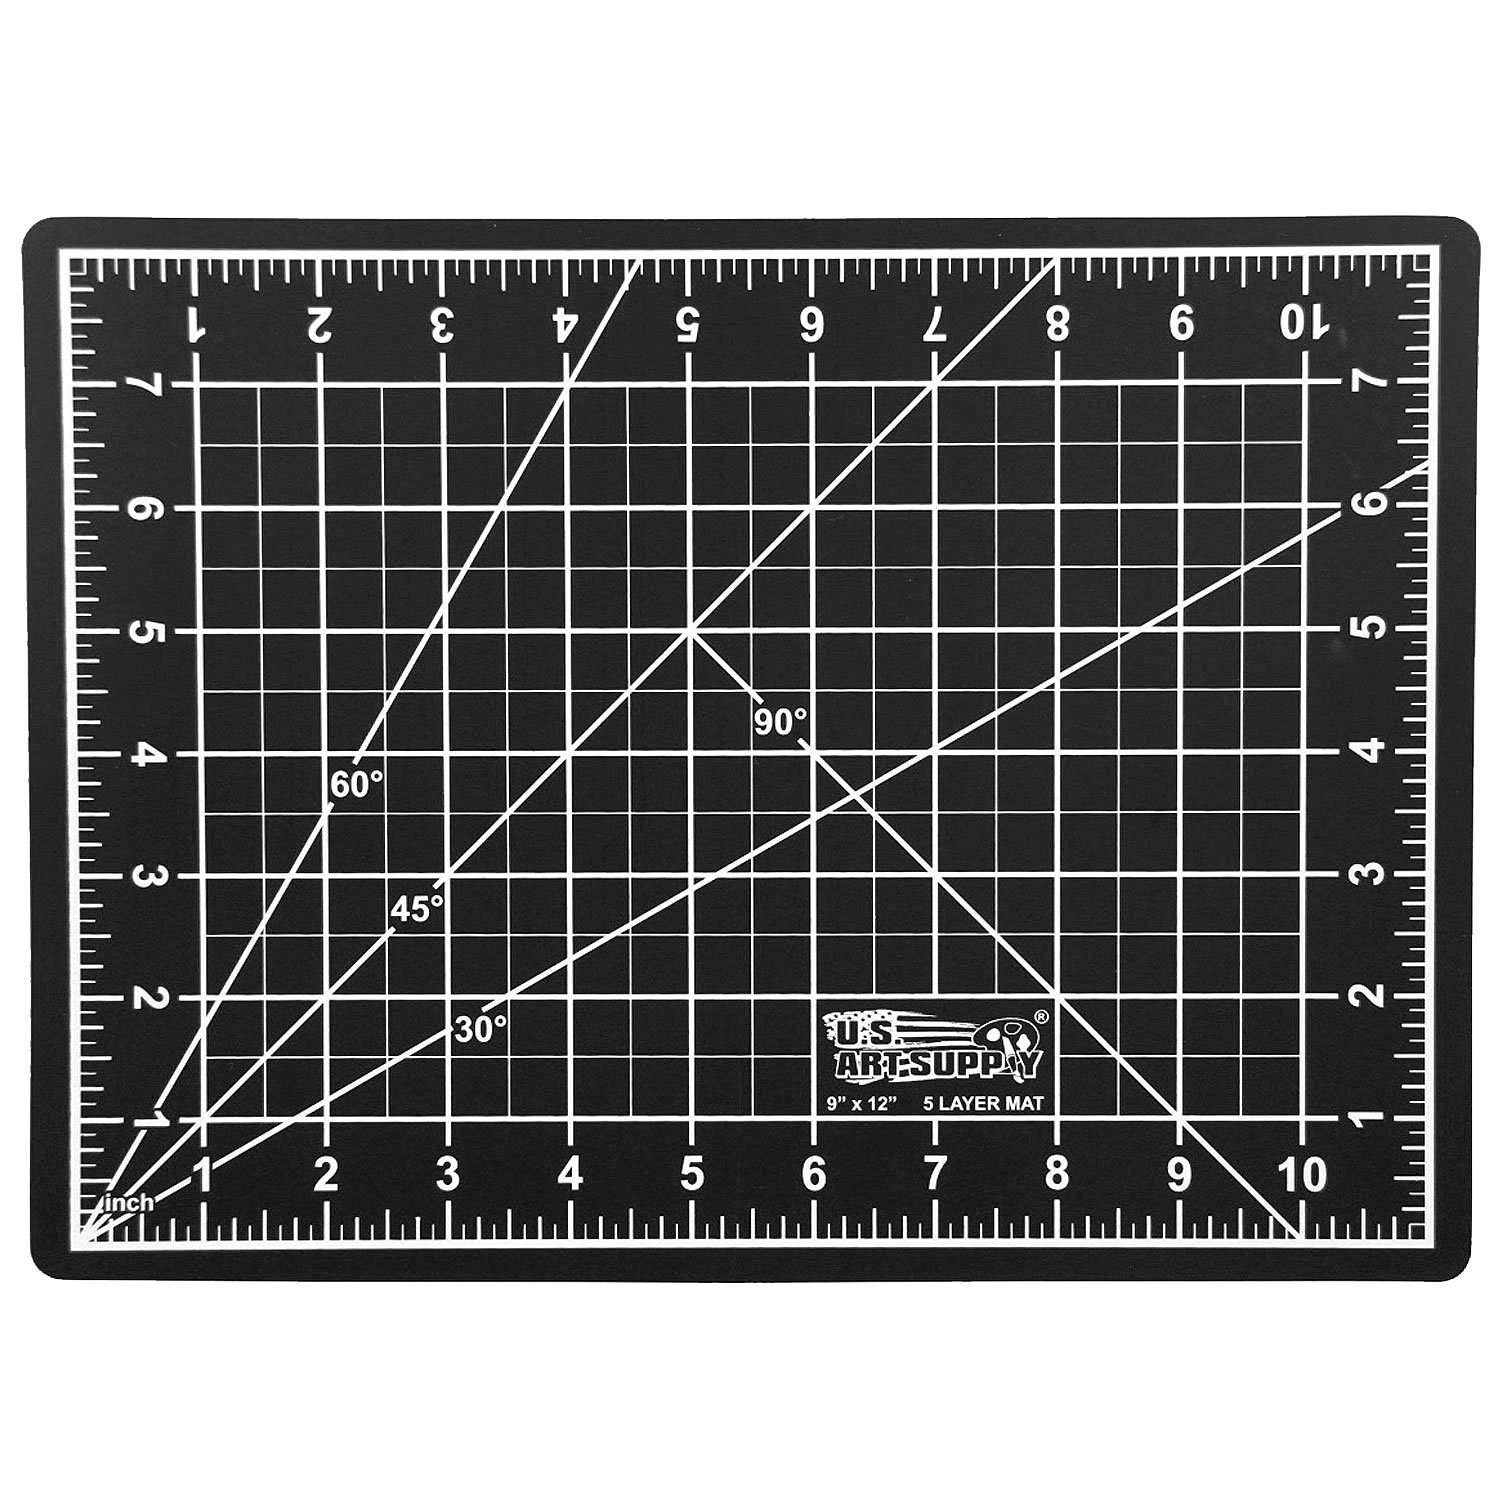 Sewing and all Arts /& Crafts Projects Quilting US Art Supply 9 x 12 GREEN//BLACK Professional Self Healing 5-Ply Double Sided Durable Non-Slip PVC Cutting Mat Great for Scrapbooking